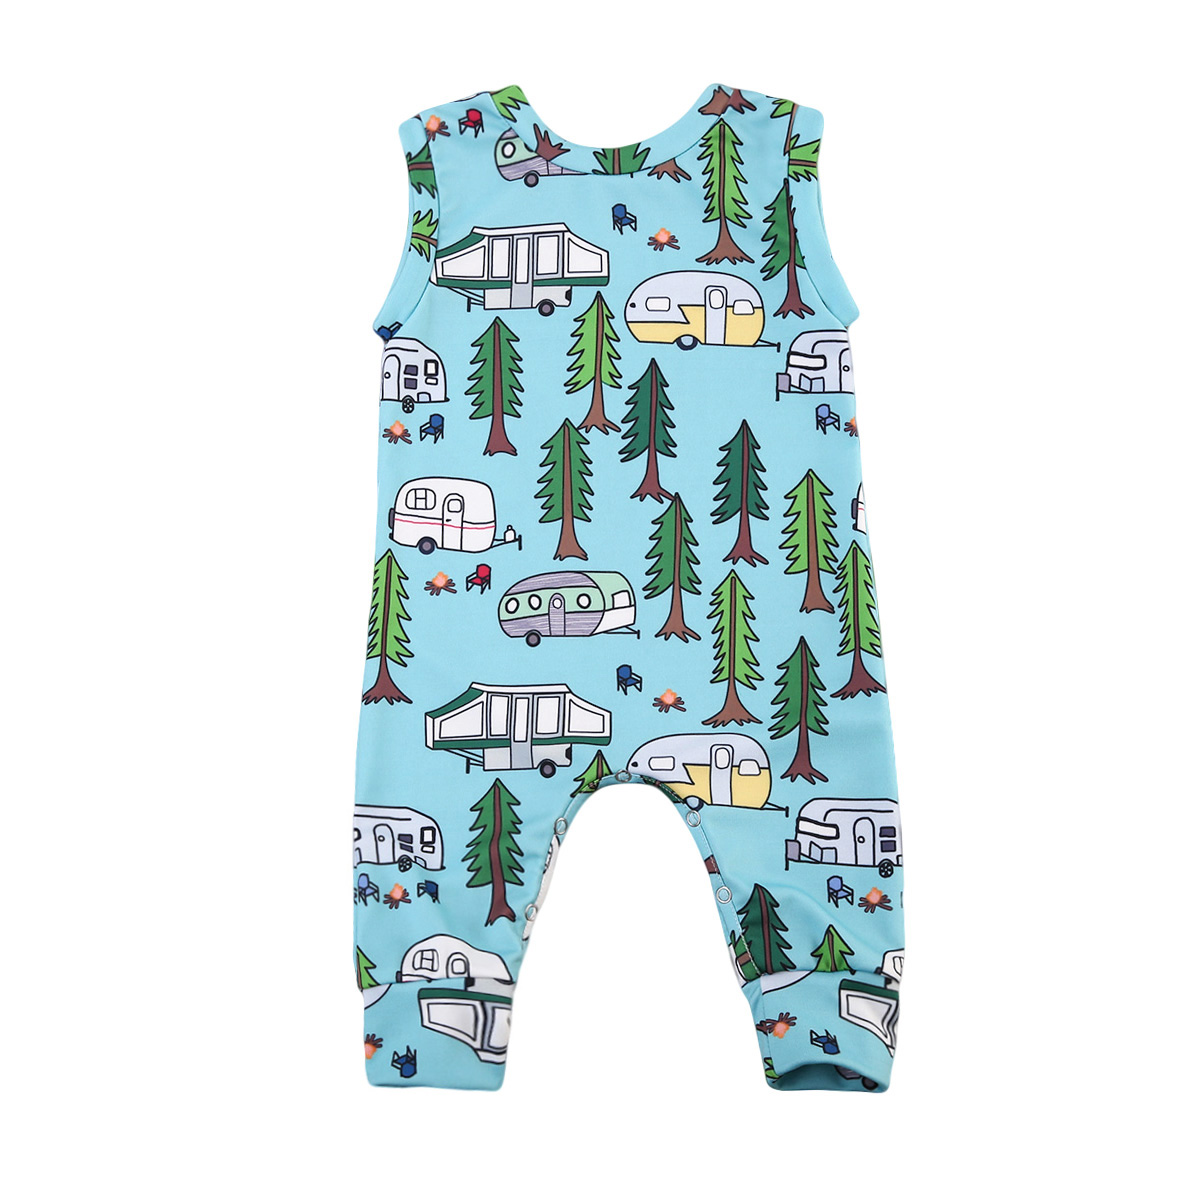 Spirited Pudcoco Baby Girl Jumpsuits 0-24m Baby Girls Boy Cute Toddler Black/green Clothes Jumpsuit Bodysuit Outfits Bodysuits & One-pieces